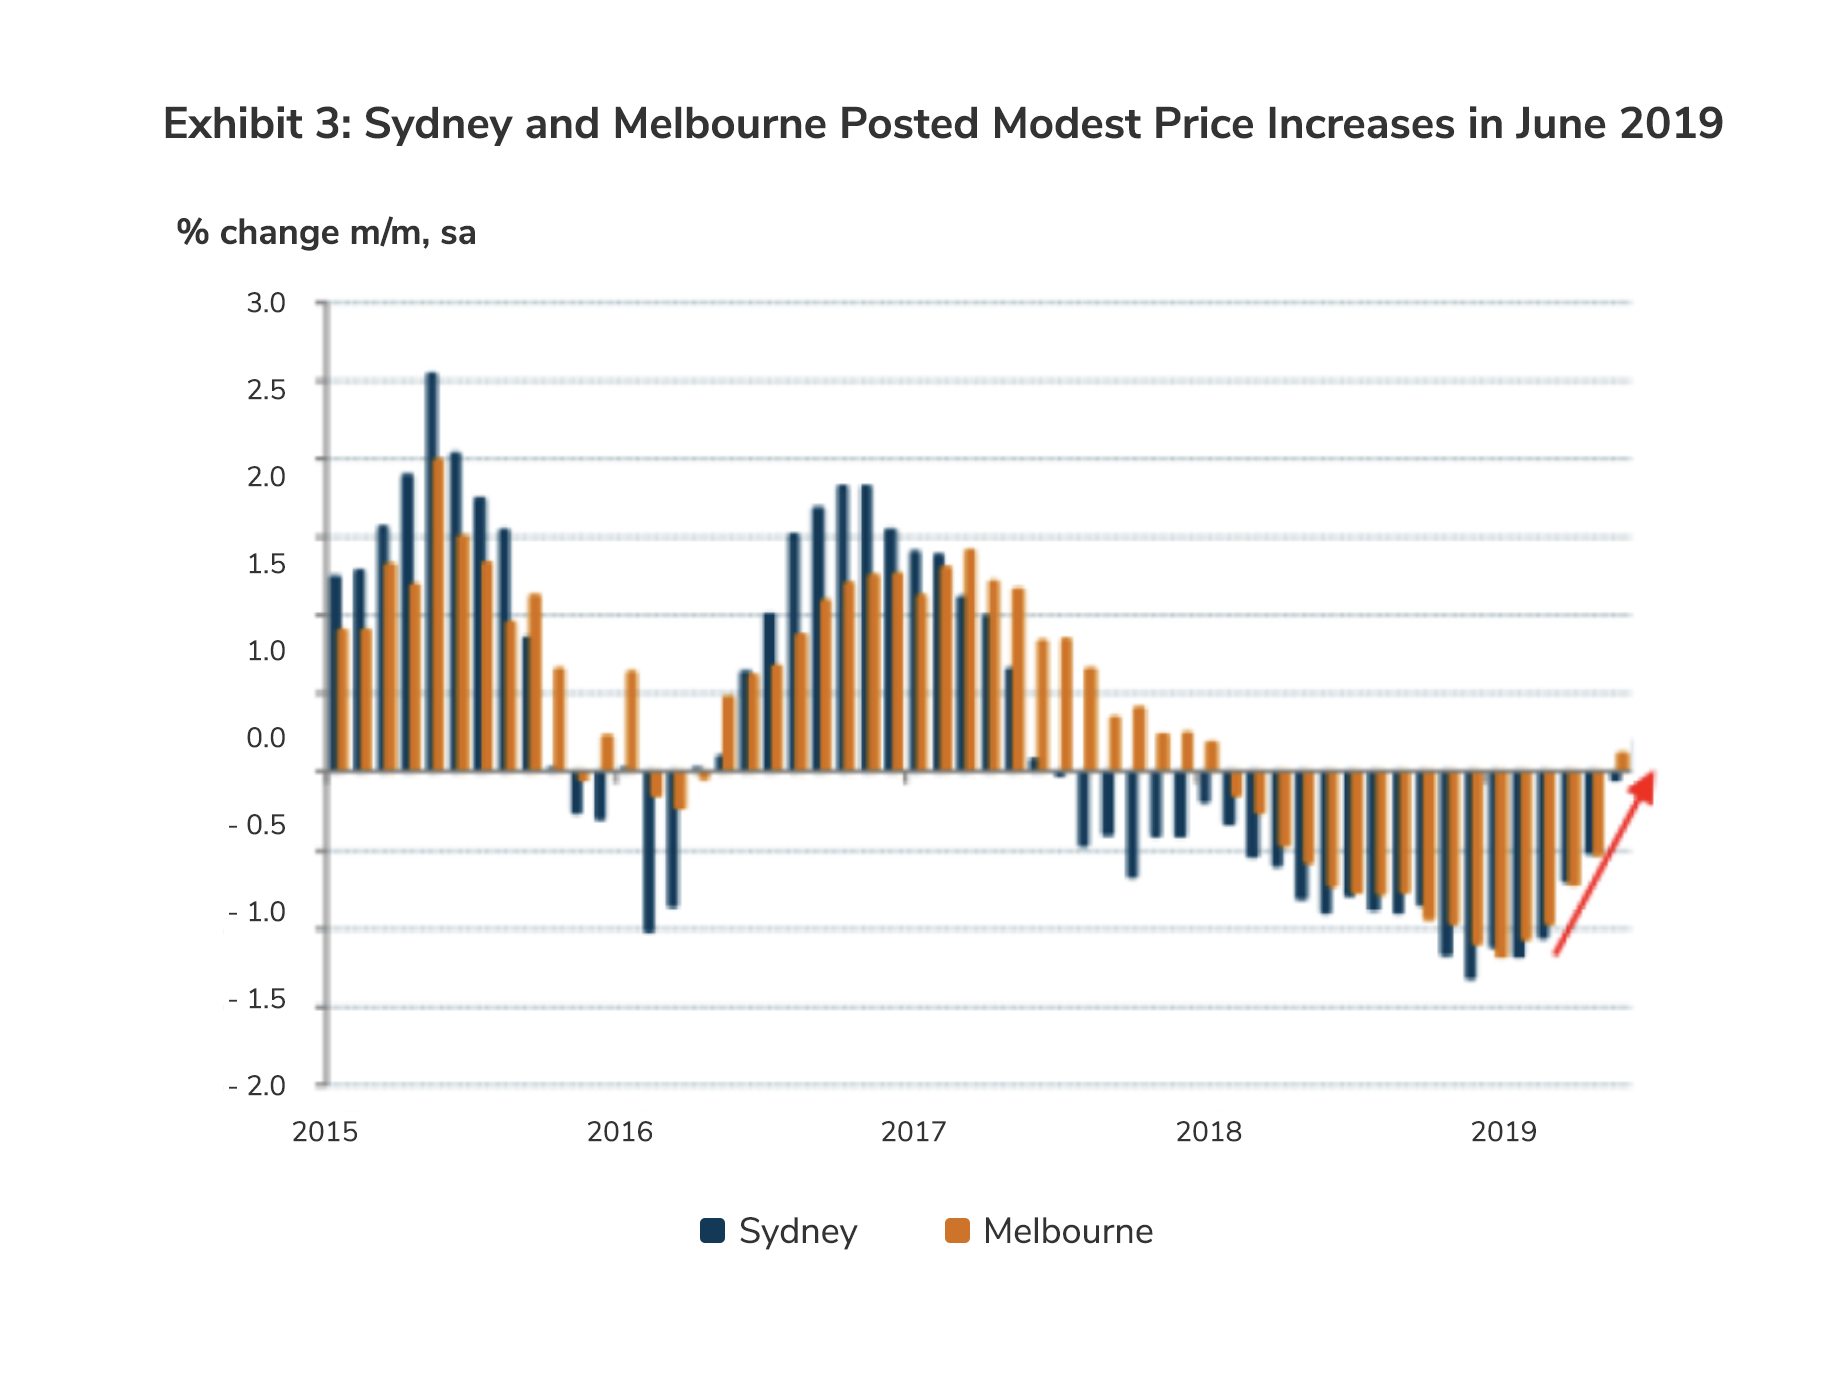 Sydney and Melbourne Posted Modest Price Increases in June 2019